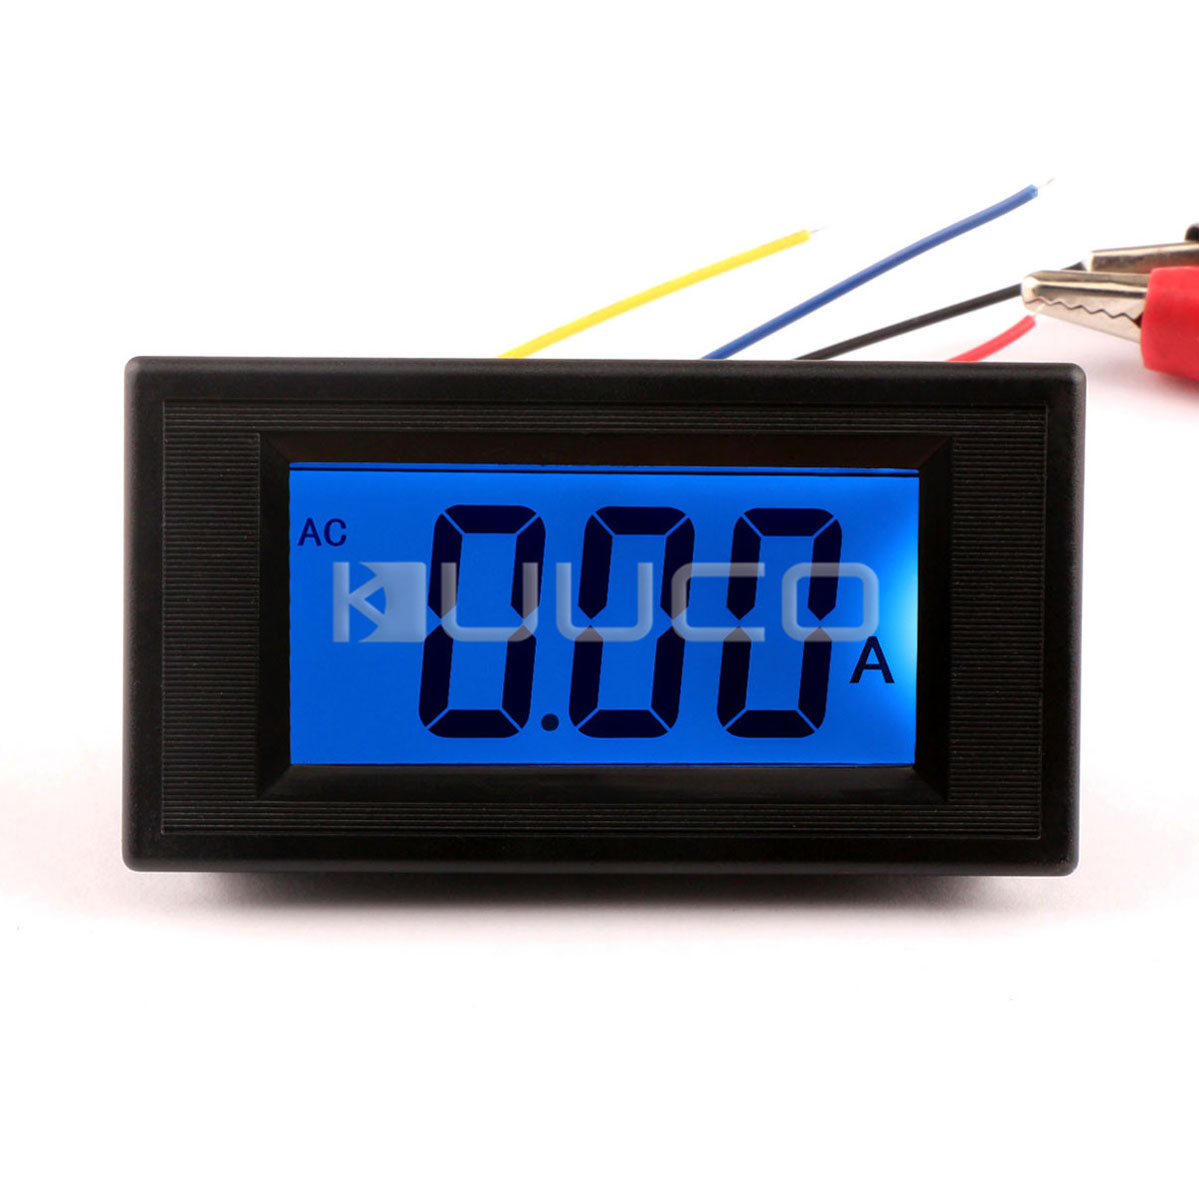 ac digital ampere meter ac 0 10a blue lcd display. Black Bedroom Furniture Sets. Home Design Ideas